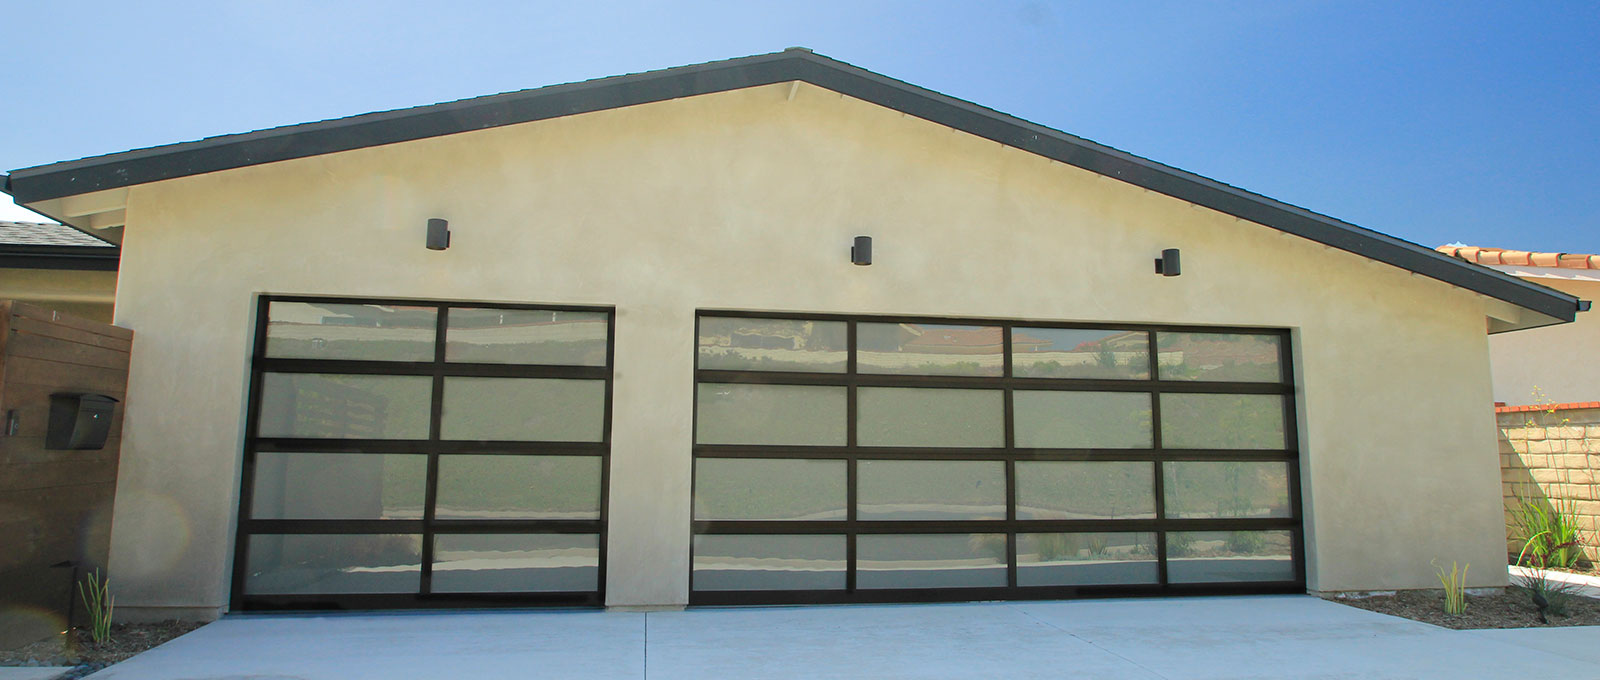 25 glass garage doors san diego decor23 - Glass garage doors san diego ...